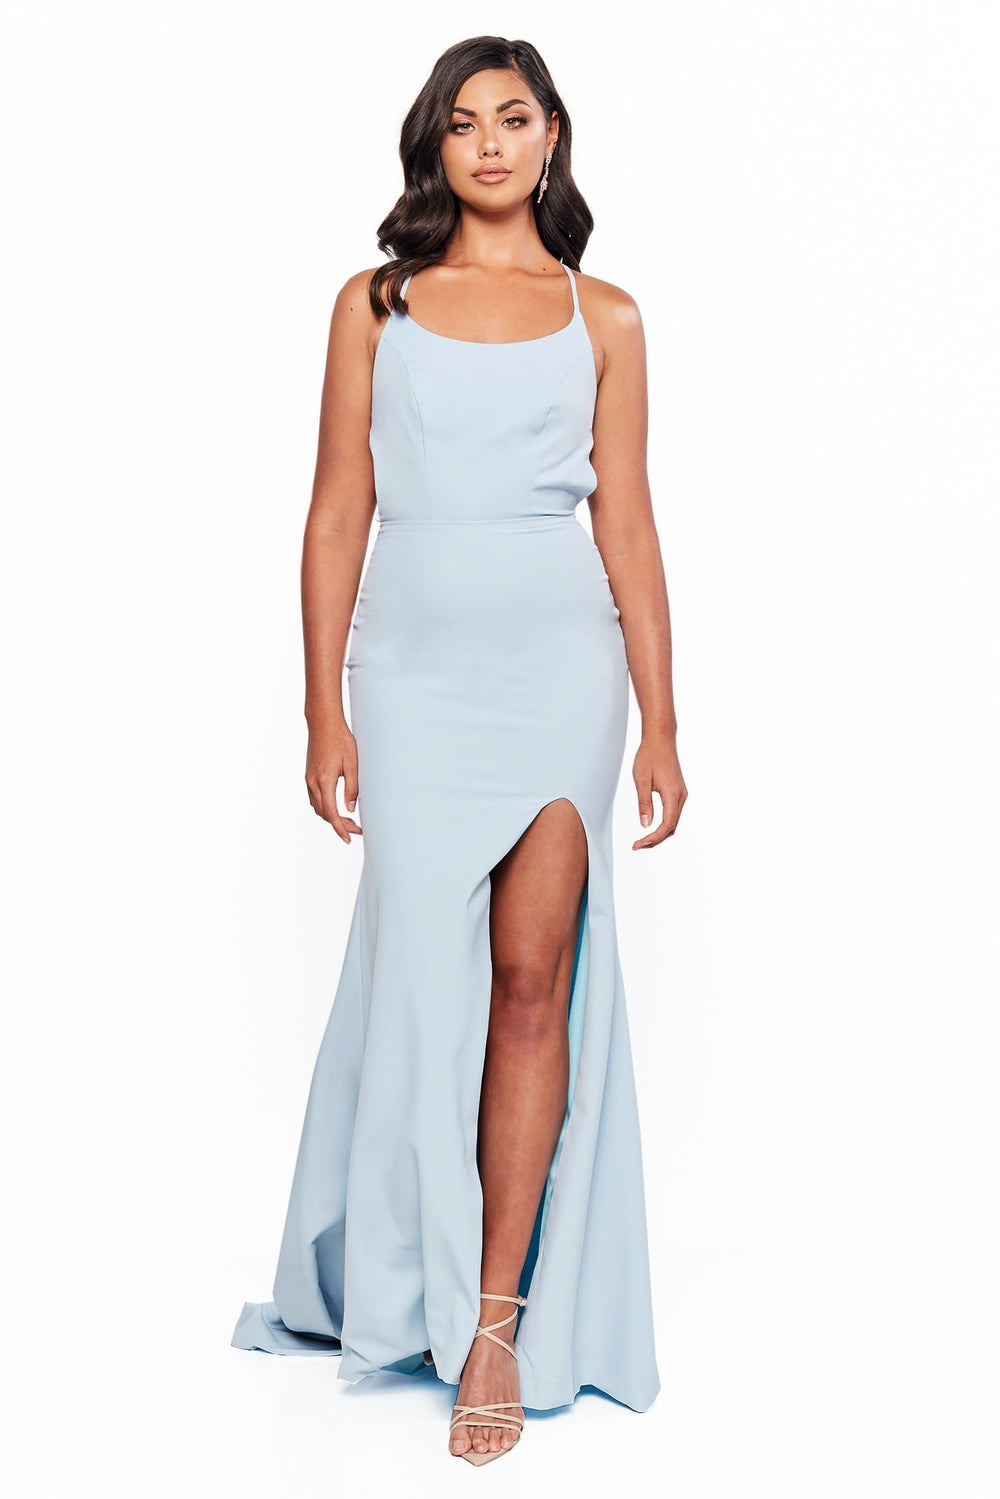 A&N Bridesmaids Evelyn - Sky Blue Gown with Lace-Up Back & Side Slit